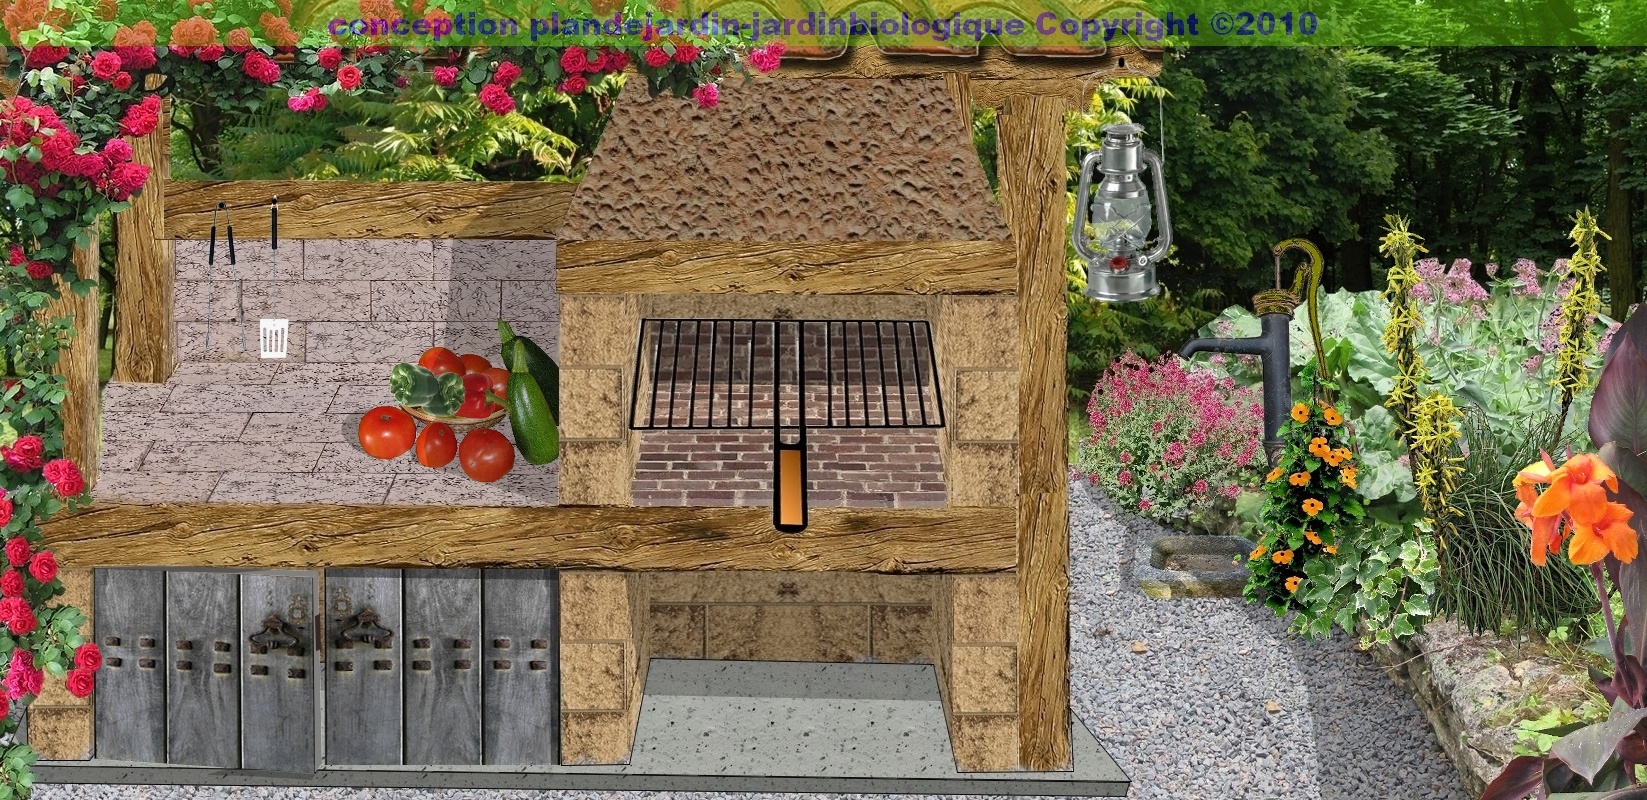 Construire un barbecue barbecue en pierre for Barbecue exterieur en pierre